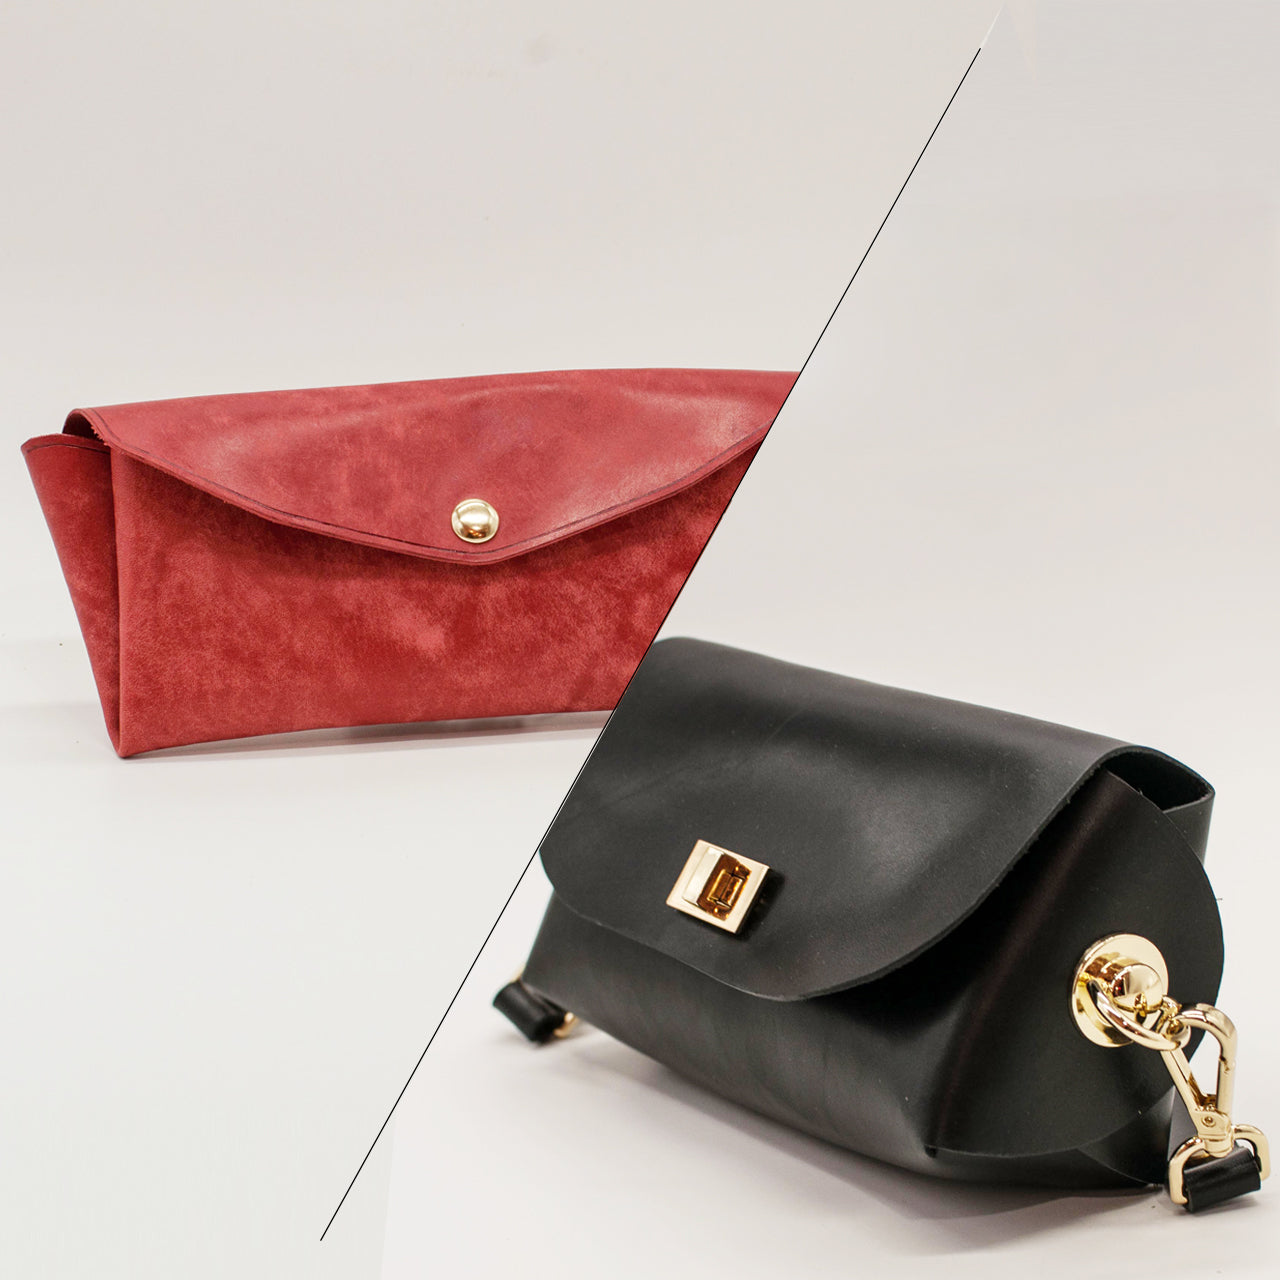 Mother's Day Workshop: Purse and Crossbody Bag - Crafune Leather Craft Workshop and Starter Kits